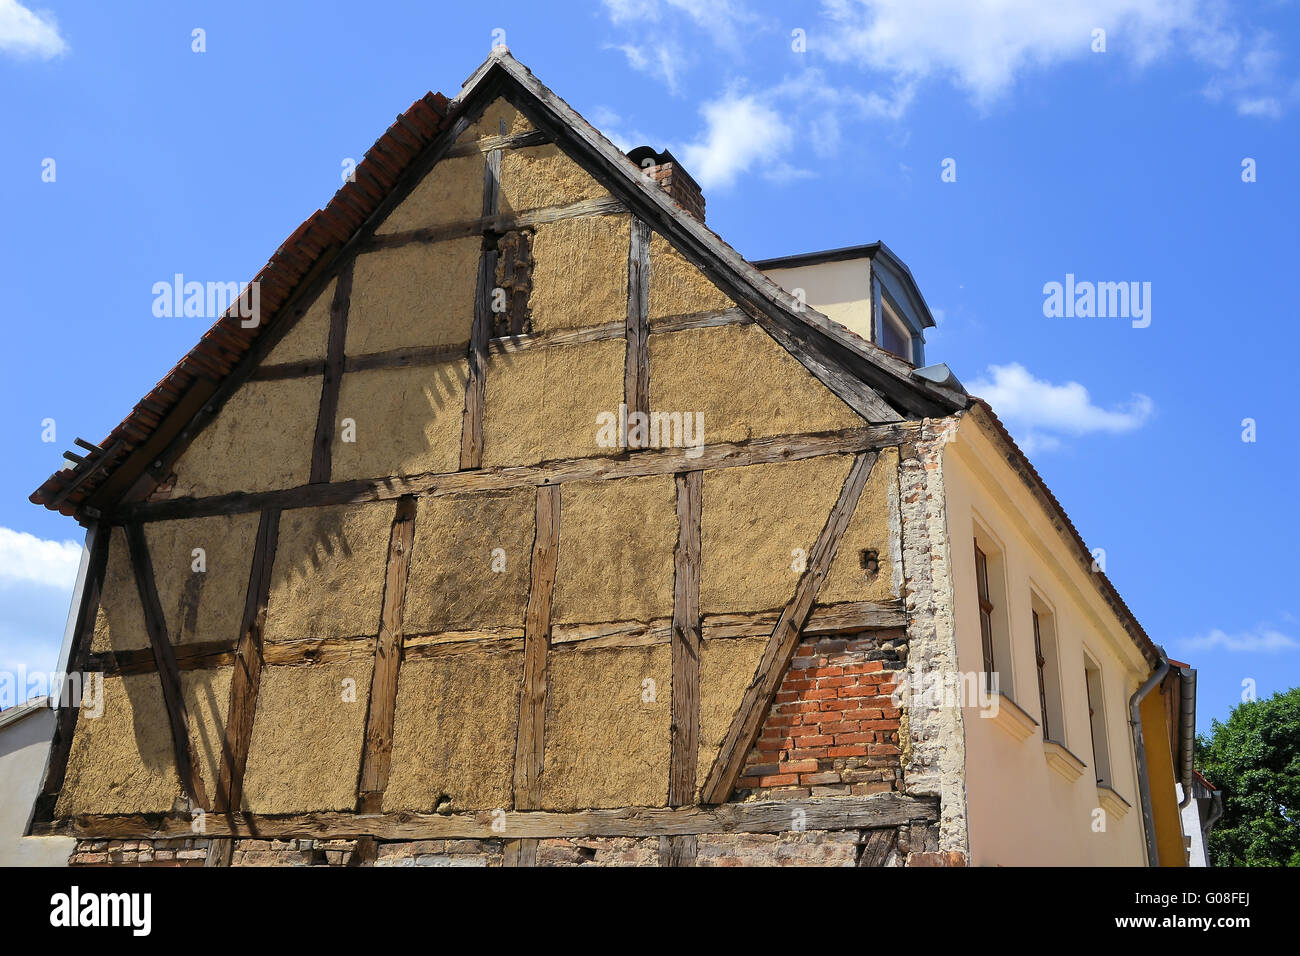 dilapidated half-timbered house in the town of Bra Stock Photo